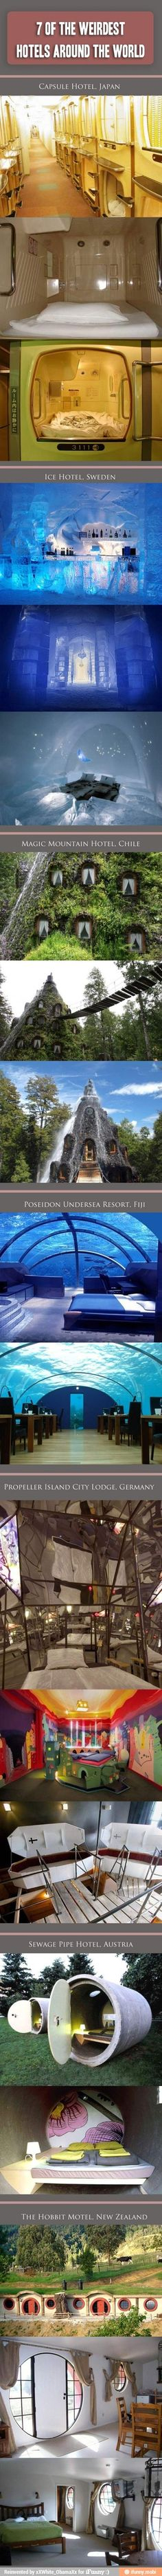 weirdest hotel, mountains, magic, ice hotel, the hobbit, places, travel, bucket lists, hotels